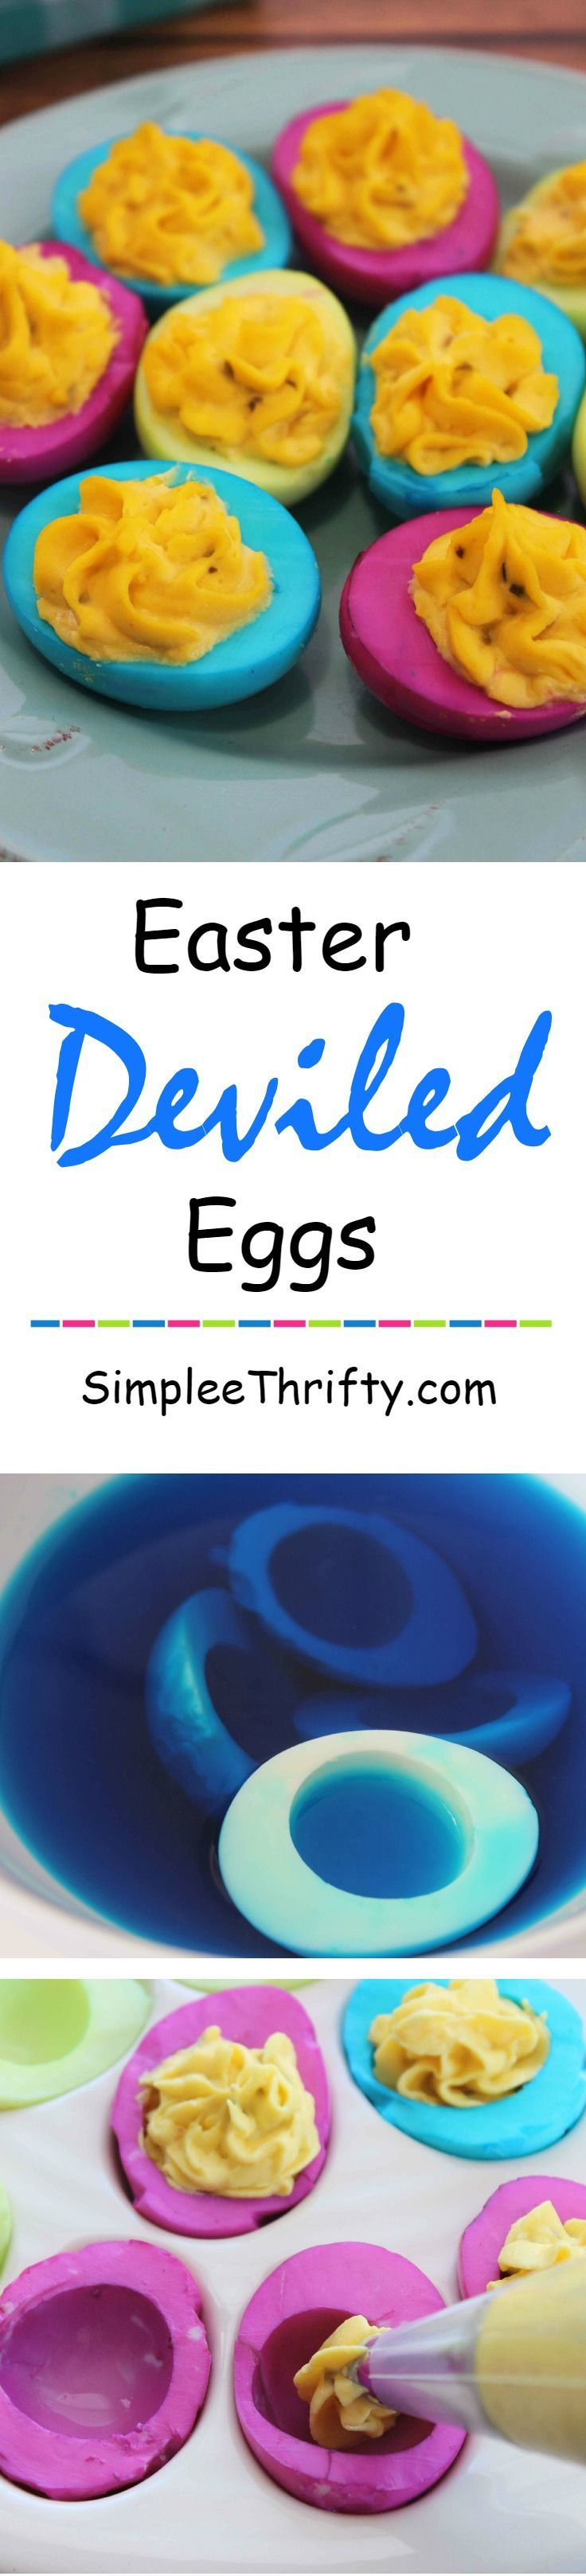 Simple and Easy Neon Easter Deviled Eggs. Add some color to the table for Easter Dinner.